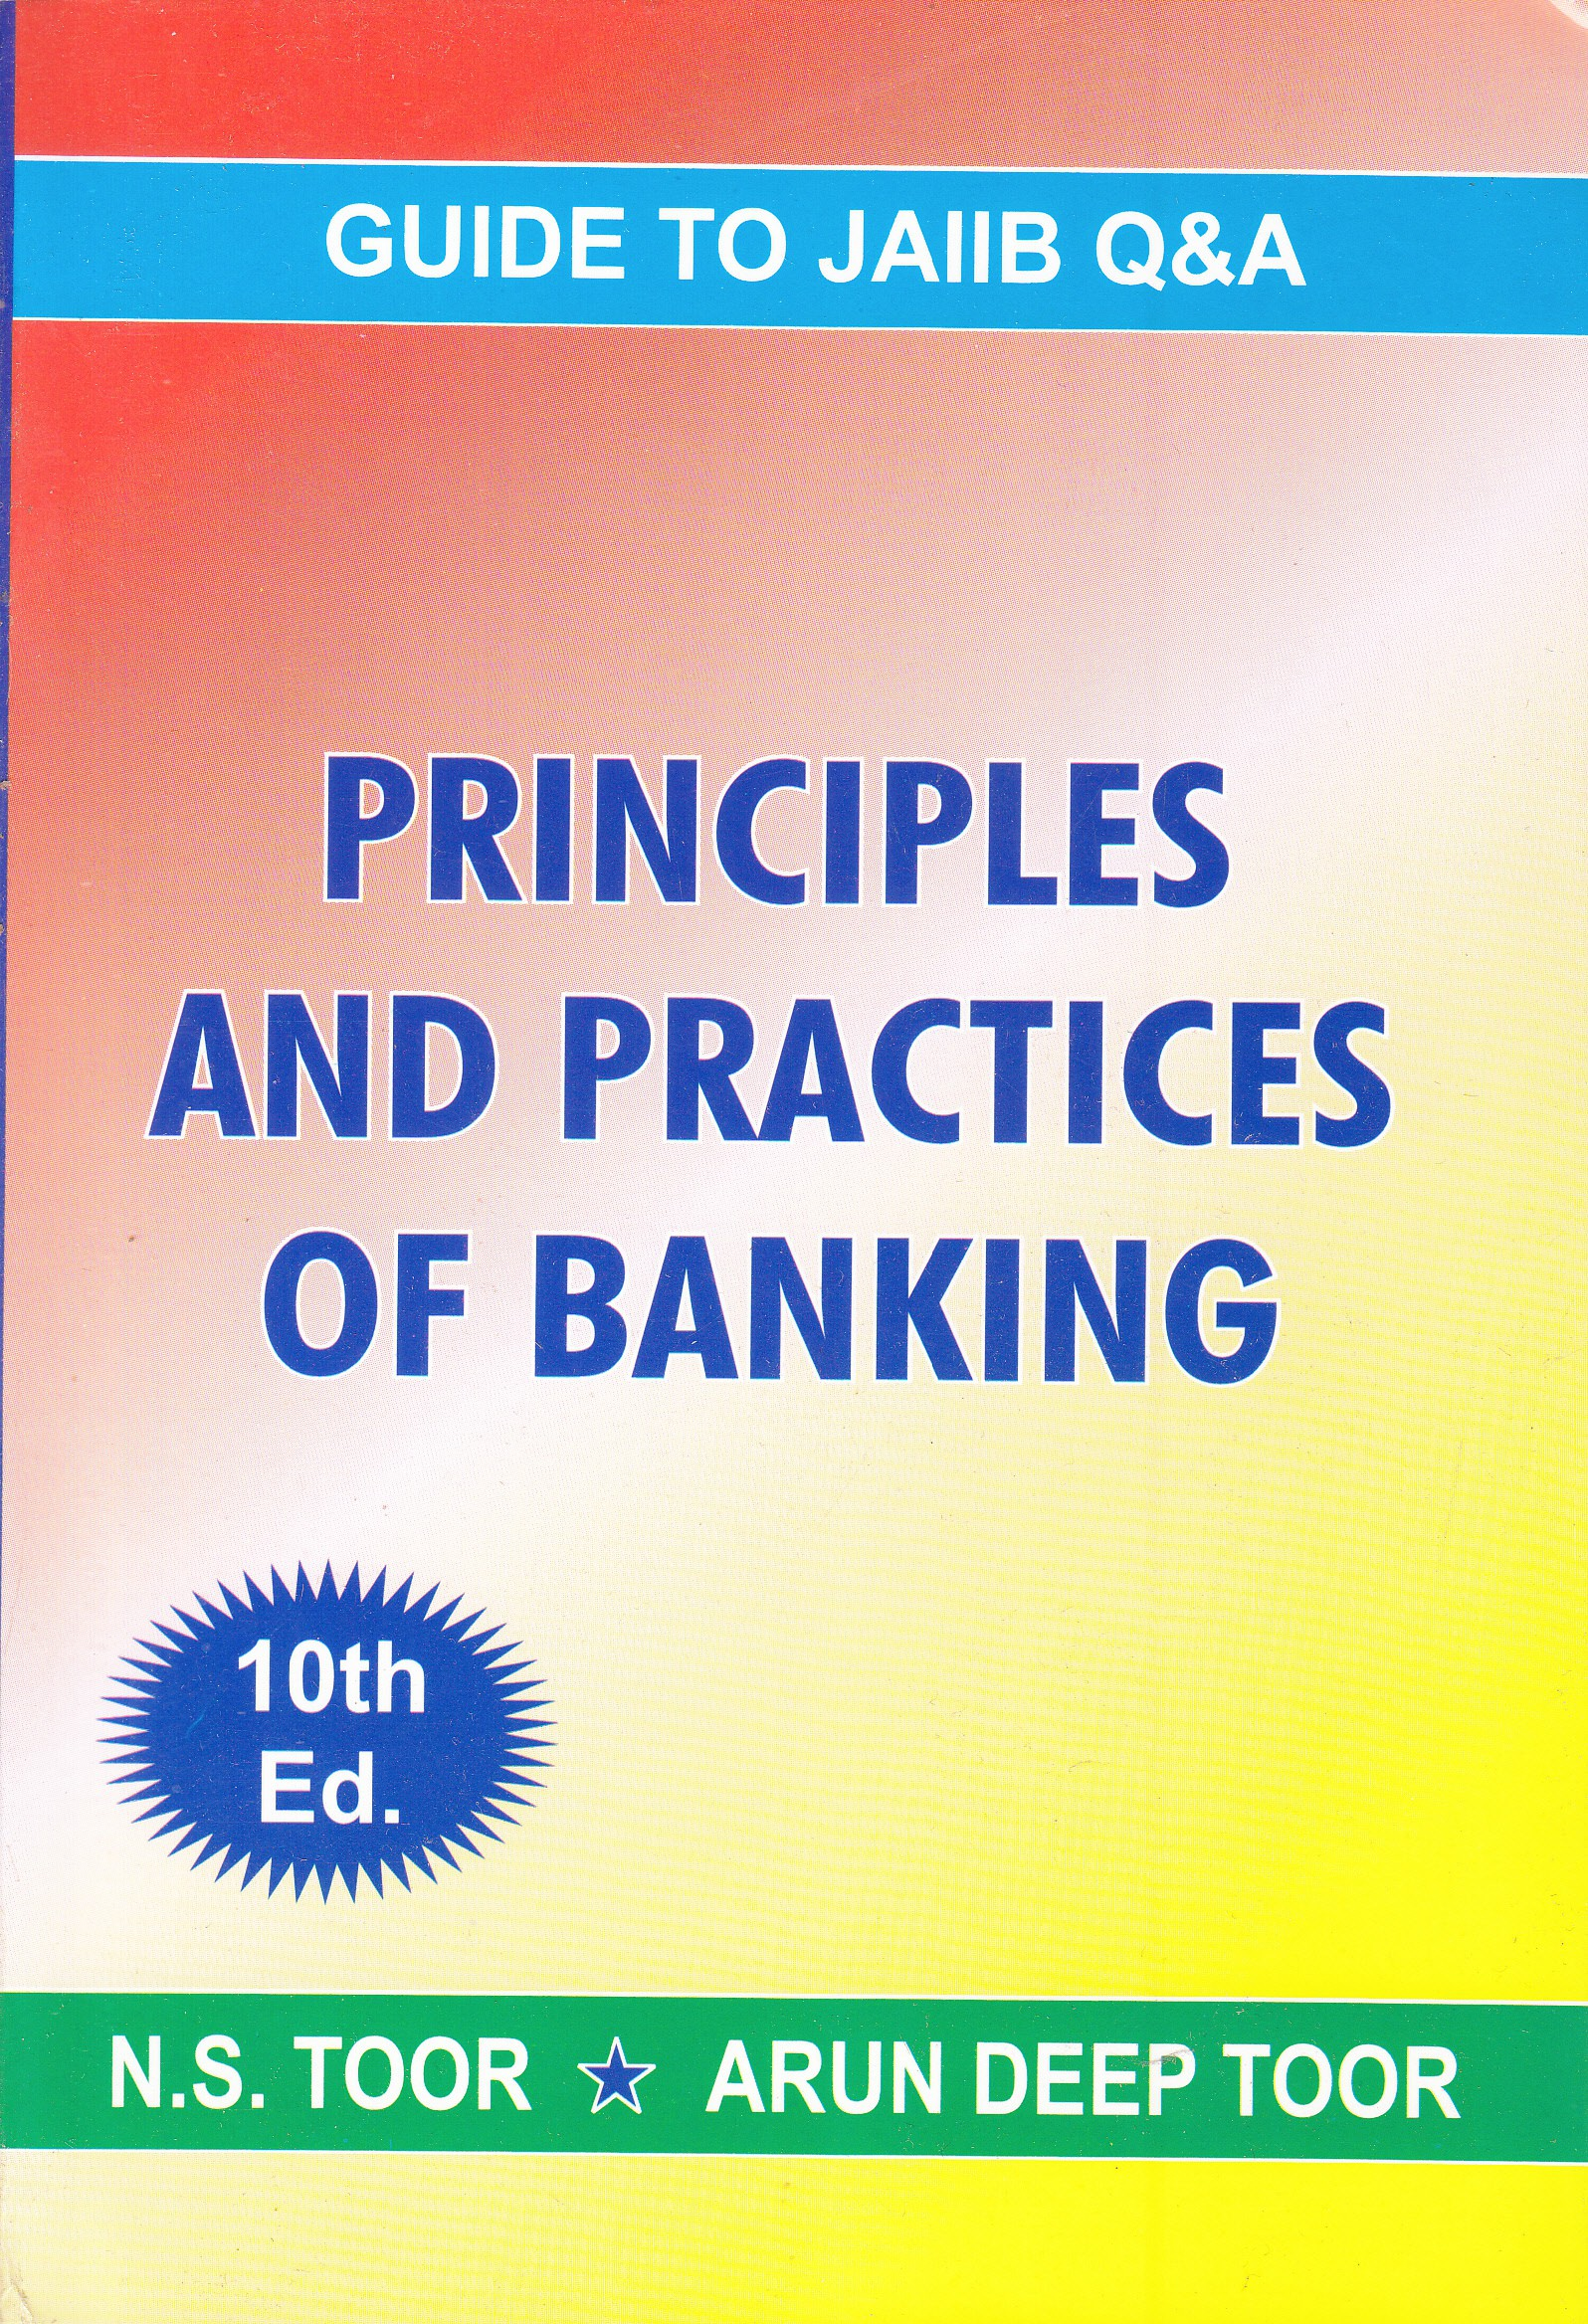 principles of banking Principles of banking - chapters 7- 13 a commercial relationship in which the consumer has purchased, rented, or leased the seller's goods or services or conducted a financial transaction with the seller within the 18 months immediately preceding a telemarketing call or has inquired about, or applied for, a product or service offered by the seller within 3 months immediately preceding the.